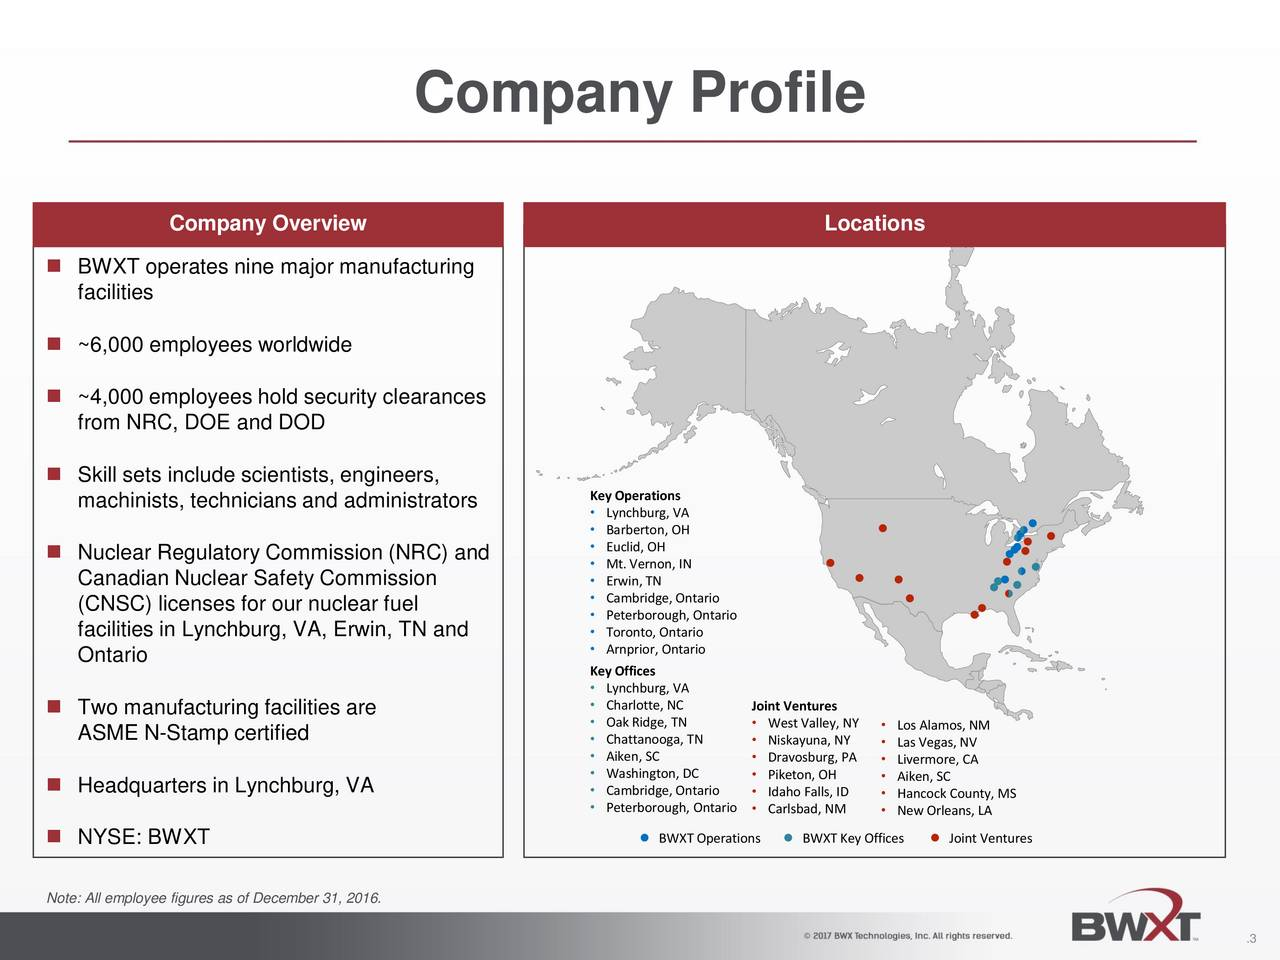 Company Overview Locations BWXT operates nine major manufacturing facilities ~6,000 employees worldwide ~4,000 employees hold security clearances from NRC, DOE and DOD Skill sets include scientists, engineers, machinists, technicians and administrators KeyOperations Lynchburg, VA Barberton, OH Nuclear Regulatory Commission (NRC) and  Euclid, OH Mt. Vernon, IN Canadian Nuclear Safety Commission  Erwin, TN (CNSC) licenses for our nuclear fuel  Peterborough, Ontario facilities in Lynchburg, VA, Erwin, TN and  Toronto, Ontario Arnprior, Ontario Ontario KeyOffices Lynchburg, VA Two manufacturing facilities are  Charlotte, NC Joint Ventures ASME N-Stamp certified  Oak Ridge, TN  WestValley, NY  Los Alamos, NM Chattanooga, TN  Niskayuna, NY  Las Vegas, NV Aiken, SC  Dravosburg, PA  Livermore, CA Headquarters in Lynchburg, VA  Washington, DC  Piketon, OH  Aiken, SC Cambridge, Ontario Idaho Falls, ID Hancock County, MS Peterborough, Onta Carlsbad, NM  New Orleans, LA NYSE: BWXT BWXTOperations BWXTKey Offices Joint Ventures Note: All employee figures as of December 31, 2016. .3